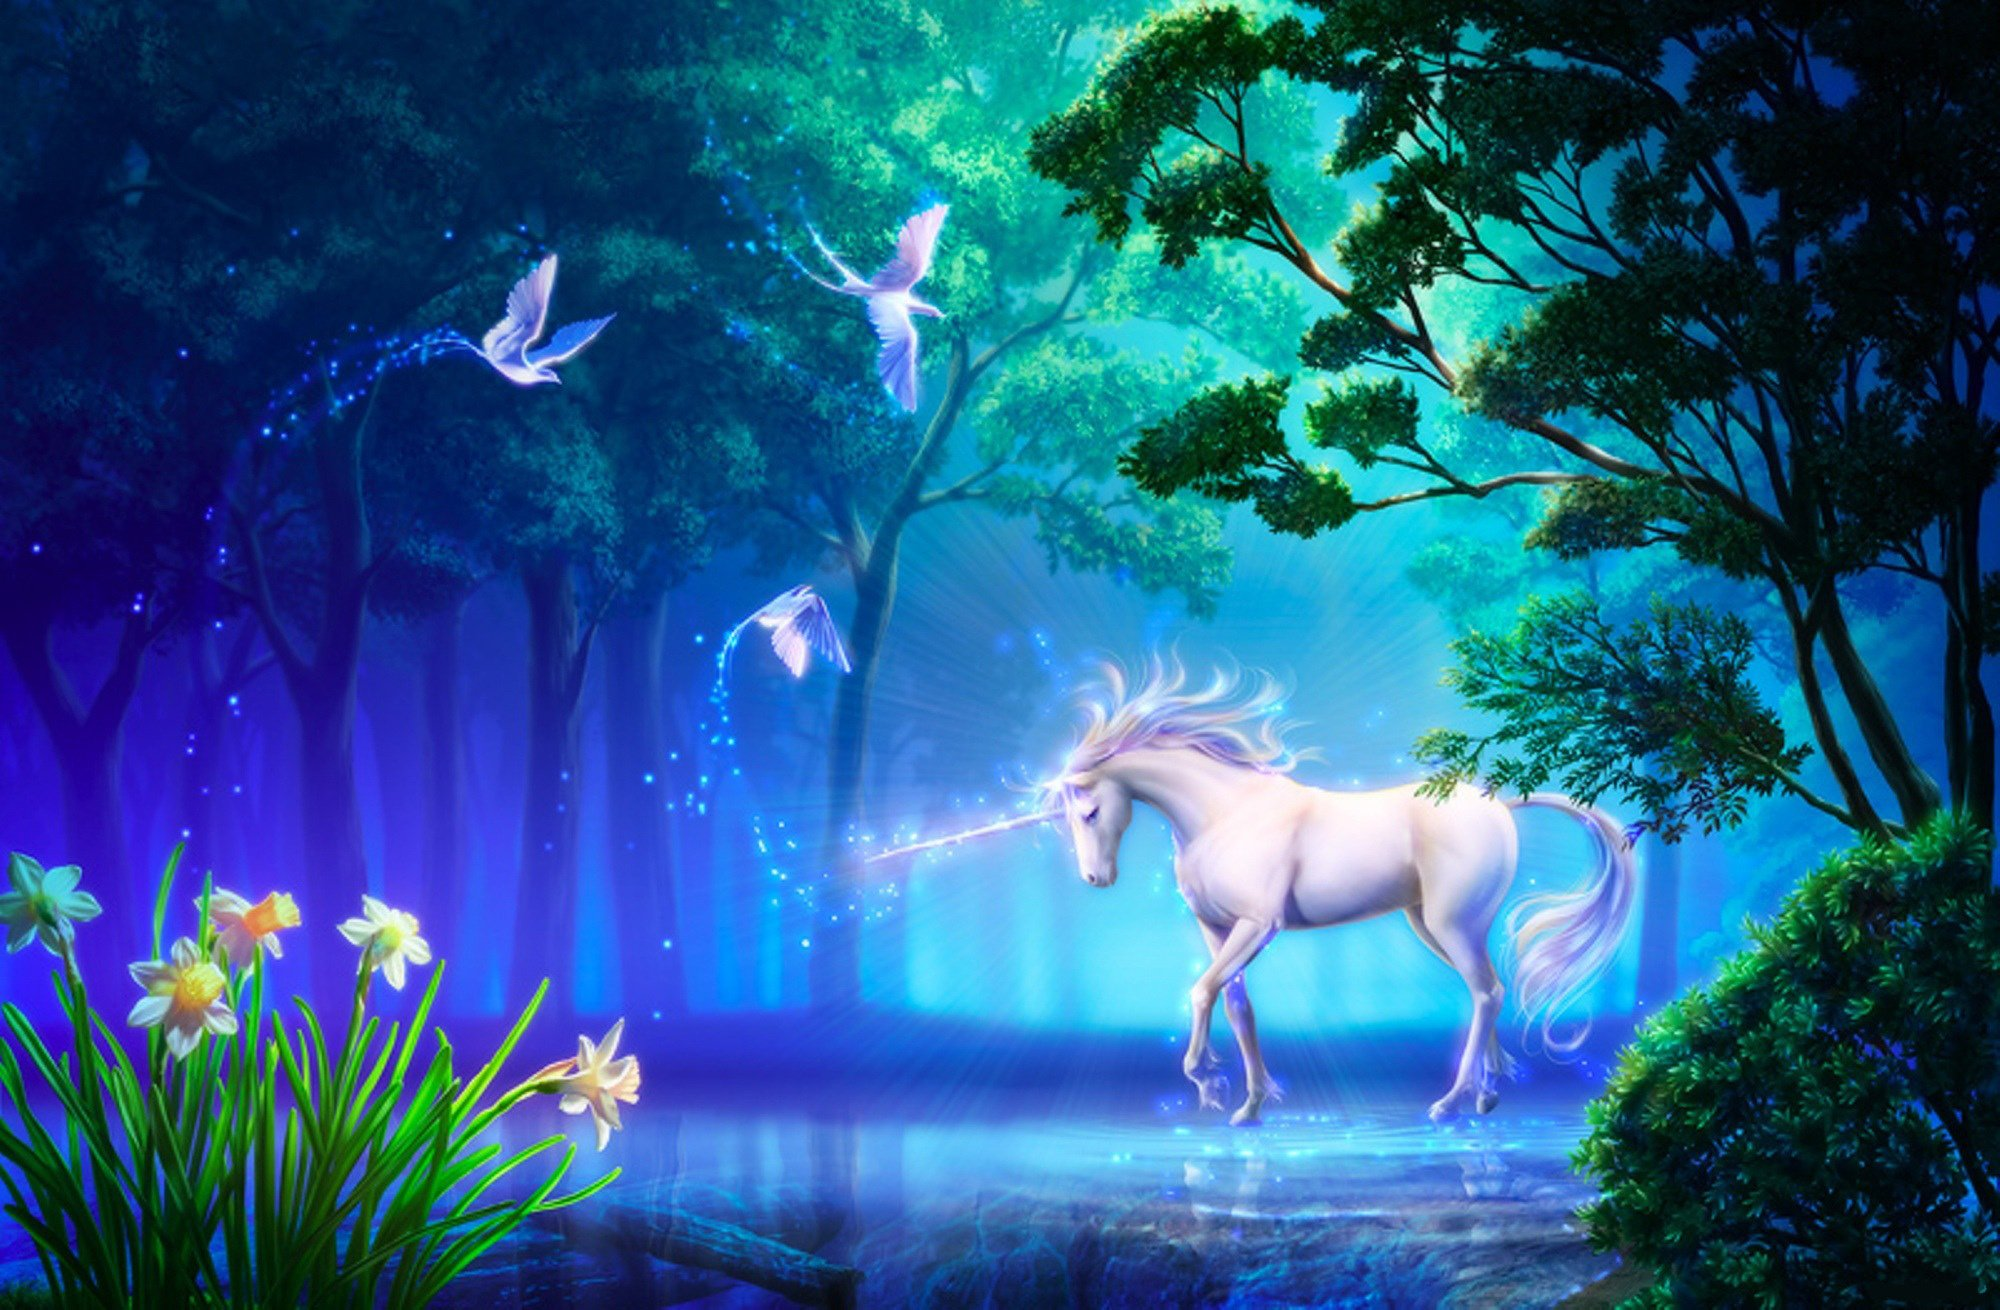 75 Unicorn HD Wallpapers Background Images 2000x1310